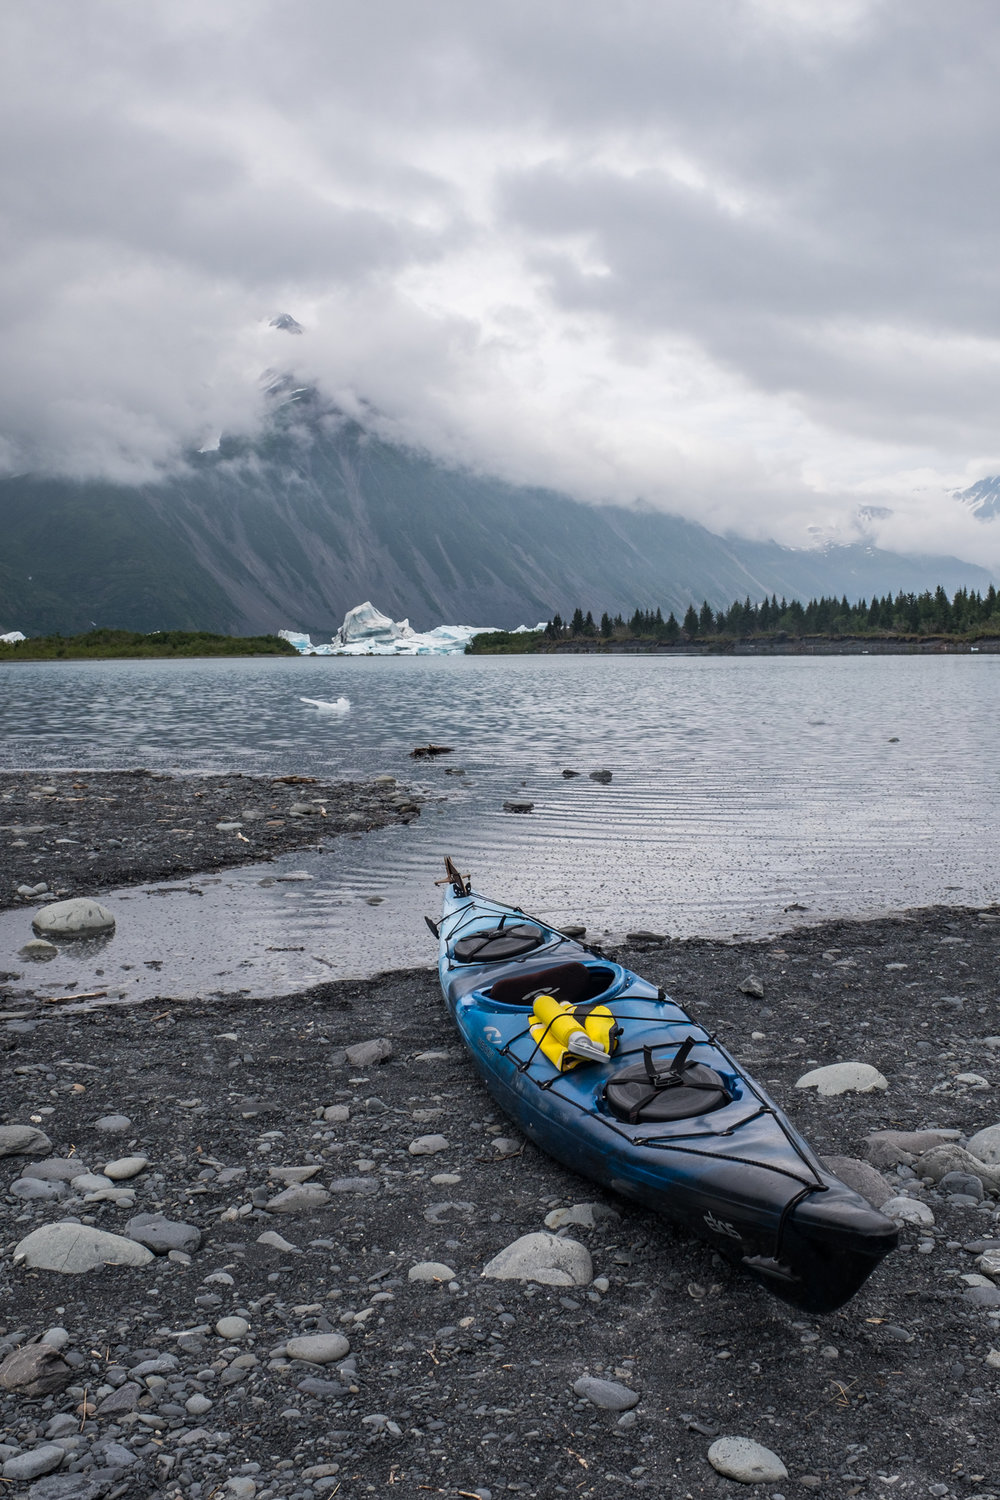 We are ready to kayak in the iceberg filled lagoon.